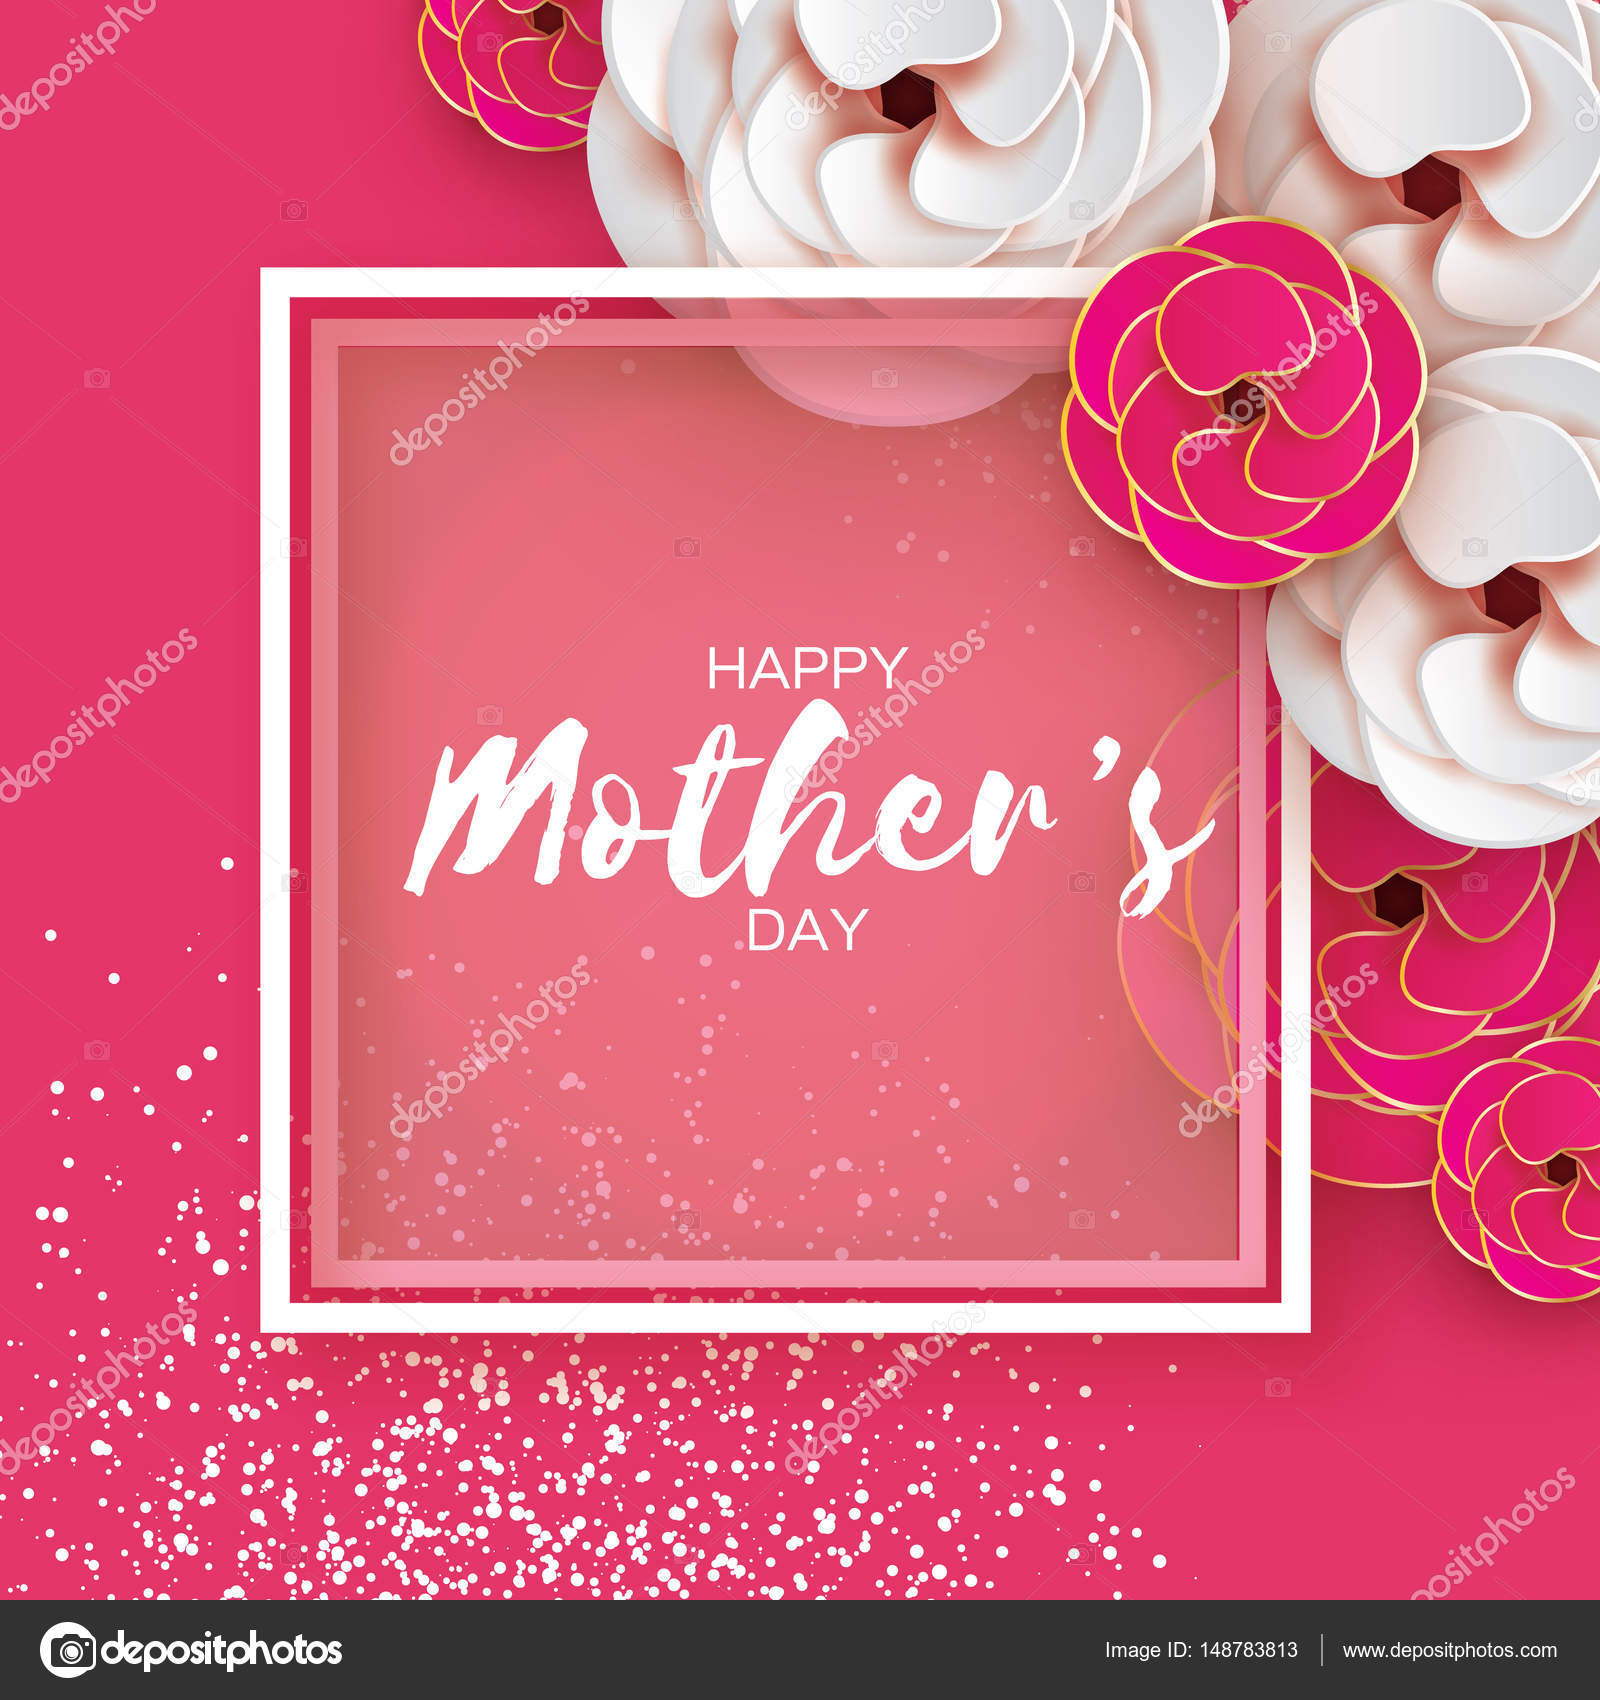 Pink gold happy mothers day greeting card womens day paper cut pink gold happy mothers day greeting card womens day paper cut flower origami kristyandbryce Image collections